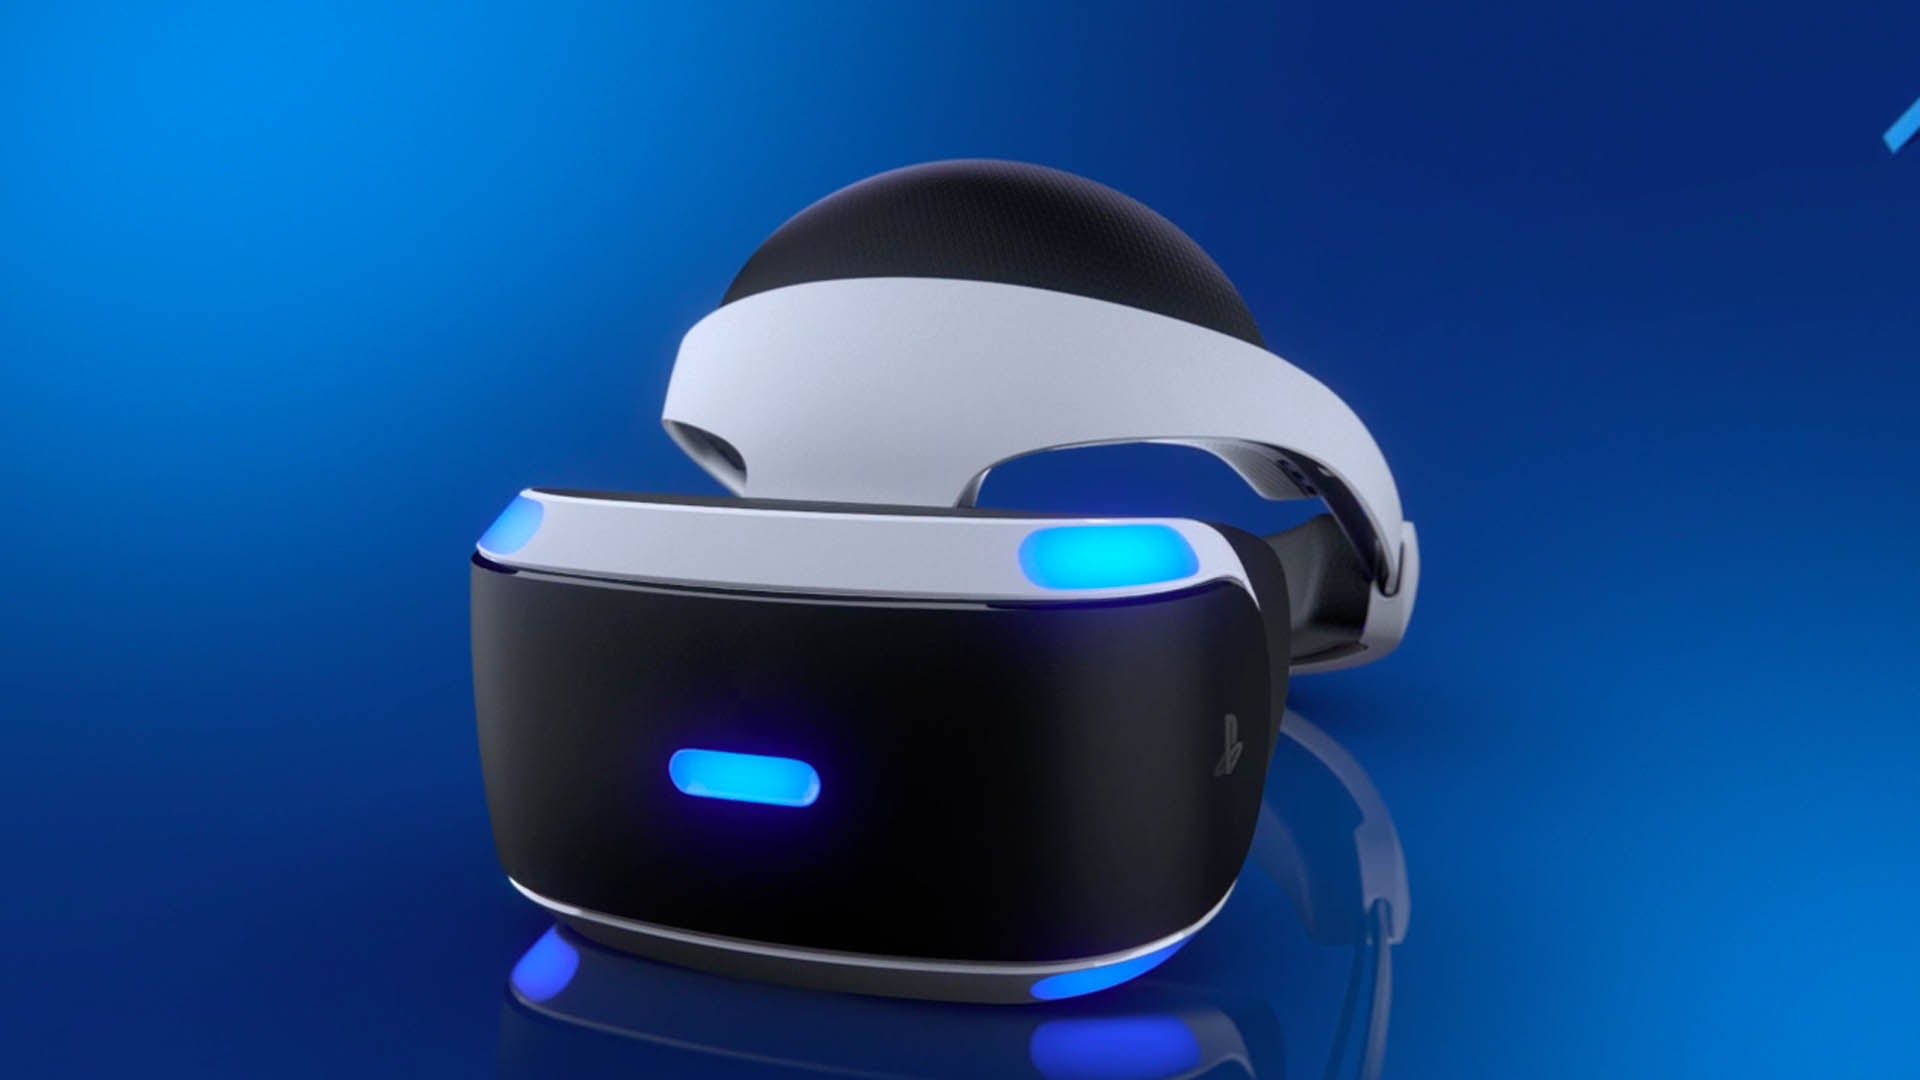 Best Playstation Vr Games All You Need To Disappear Into Another Ps3 Parts Diagram Action Offered By Sources From Model Reality Trusted Reviews